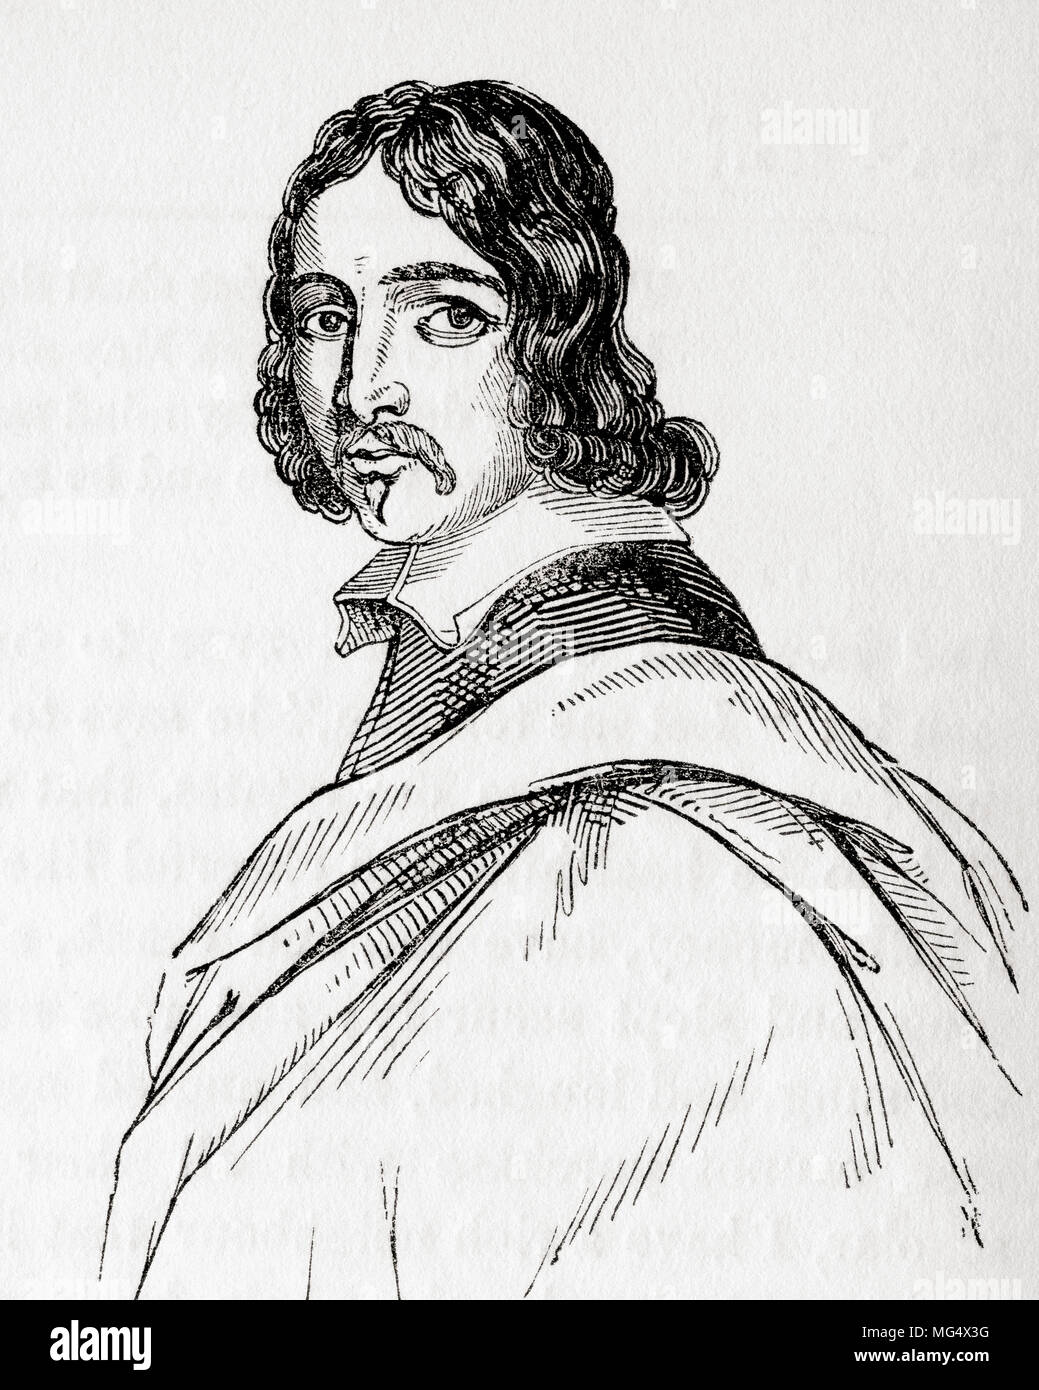 Francis Moore, 1657 – 1715.  British physician and astrologer.  From Old England: A Pictorial Museum, published 1847. - Stock Image